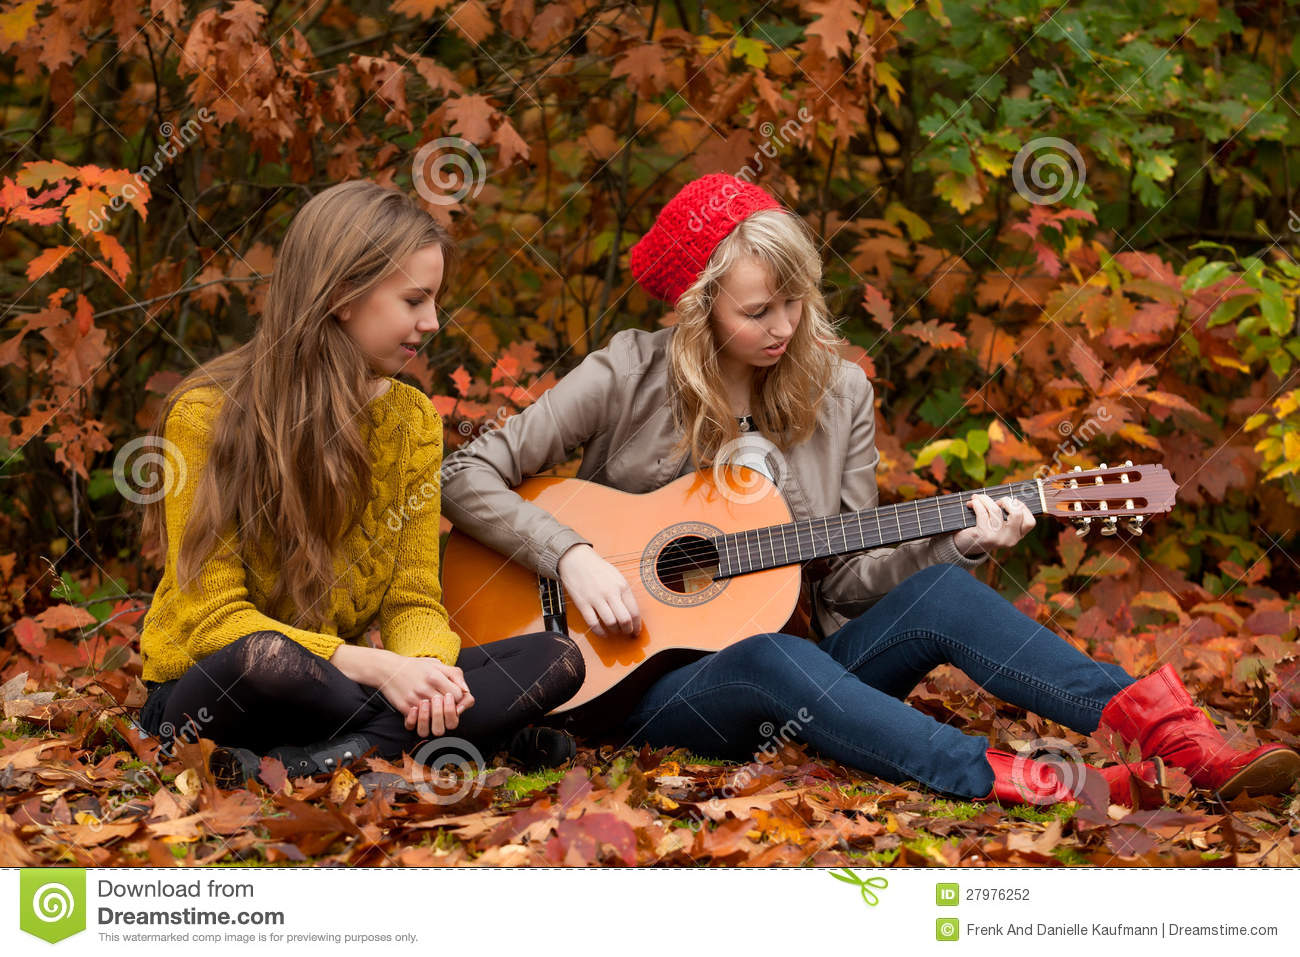 Playing guitar in the woods